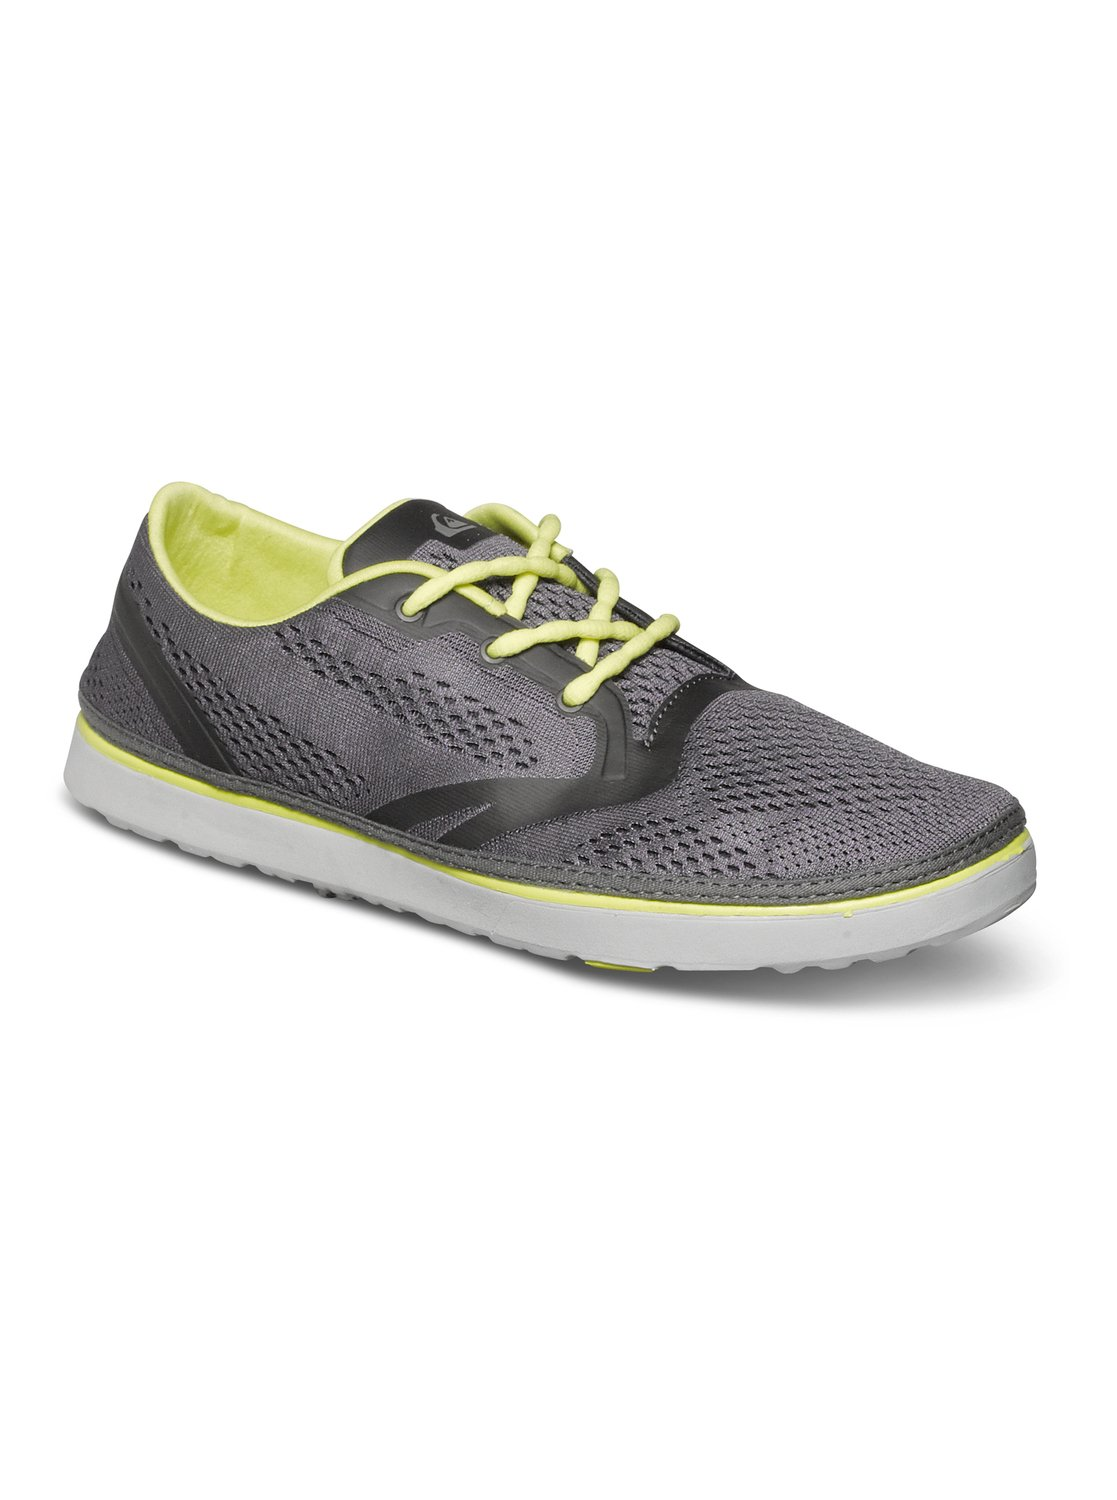 Mens Ag Amphibian Shoe